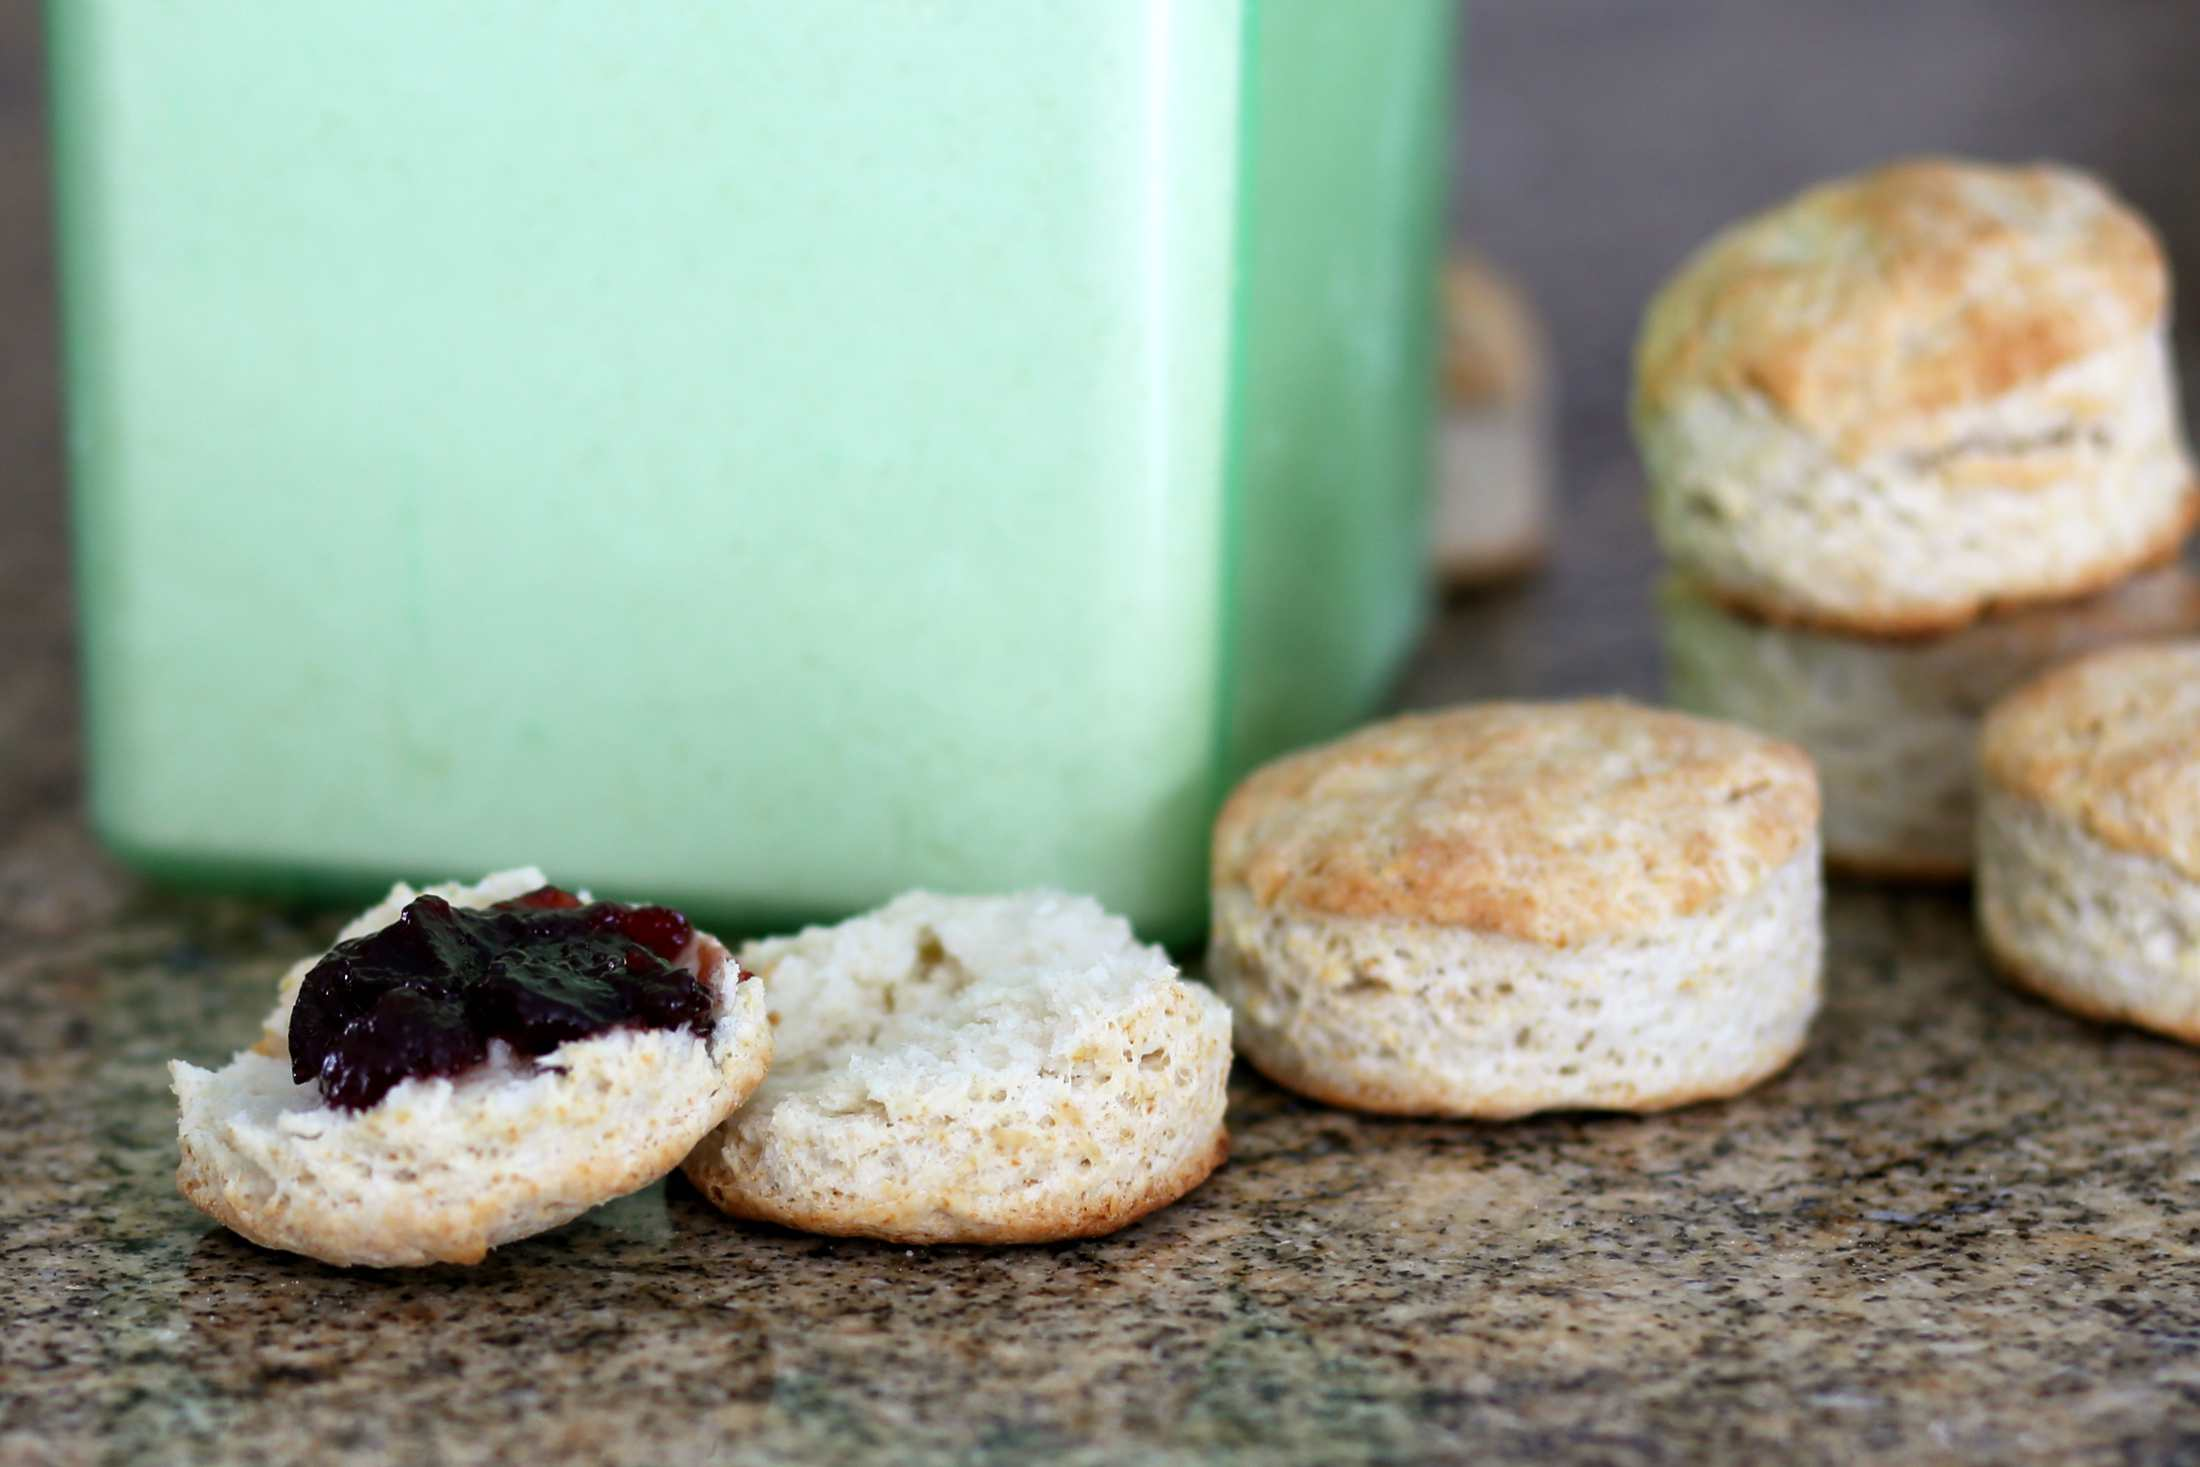 Biscuits with jelly